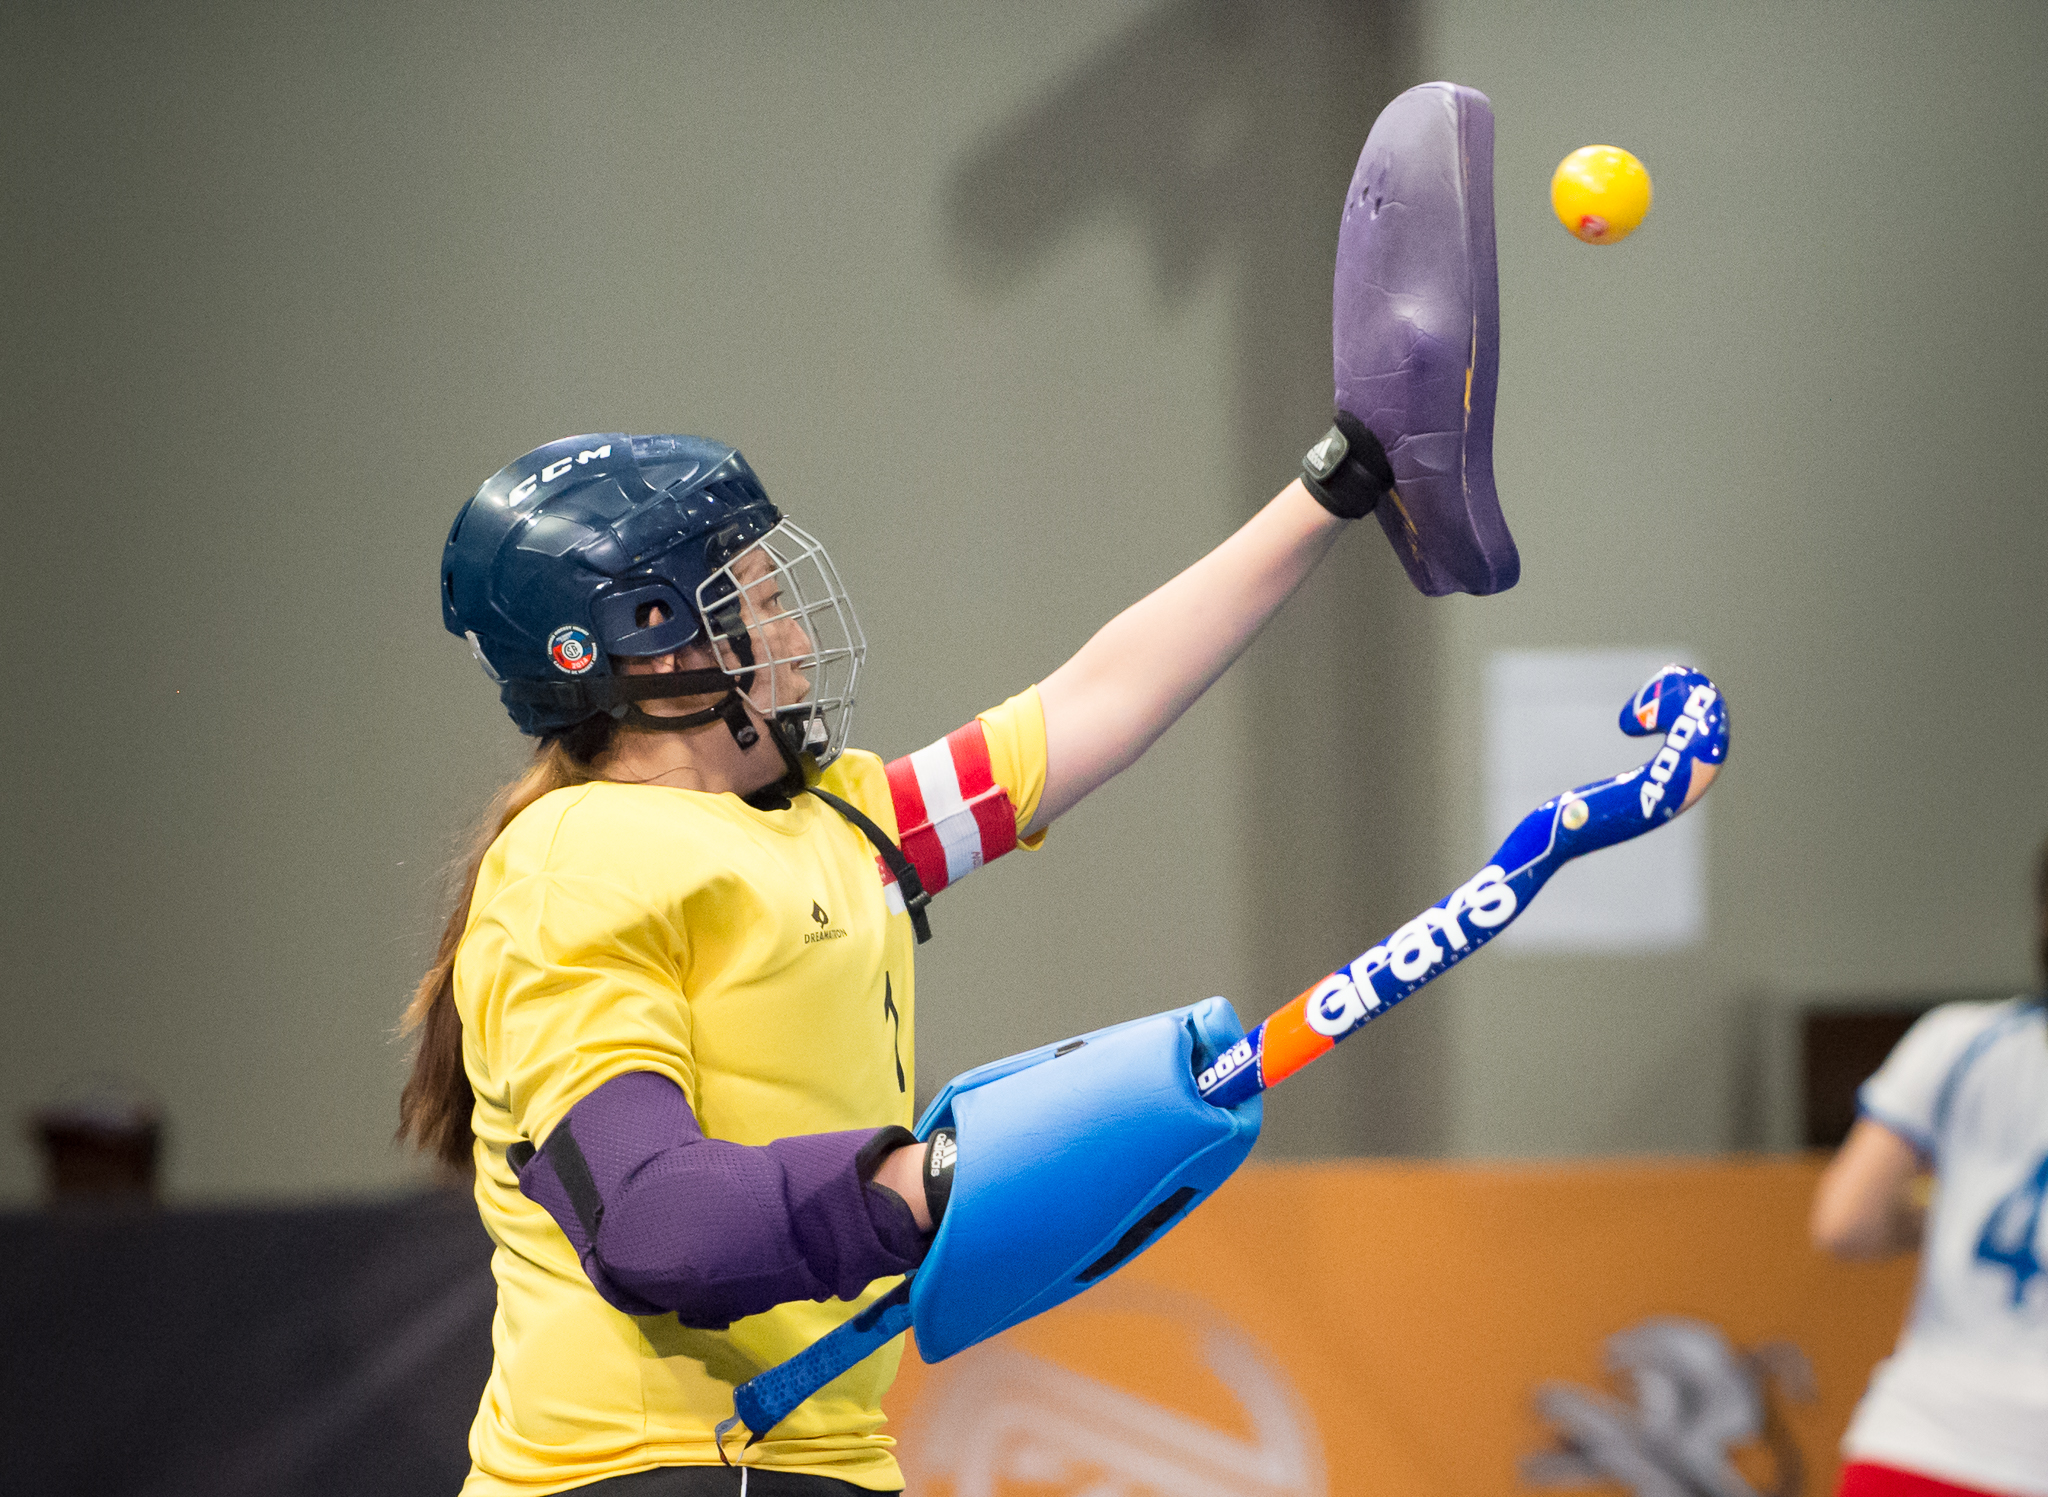 A Singaporean hockey goal keeper prepares to catch the ball during the SEA Games at the Malaysian International Trade and Exhibition Centre.